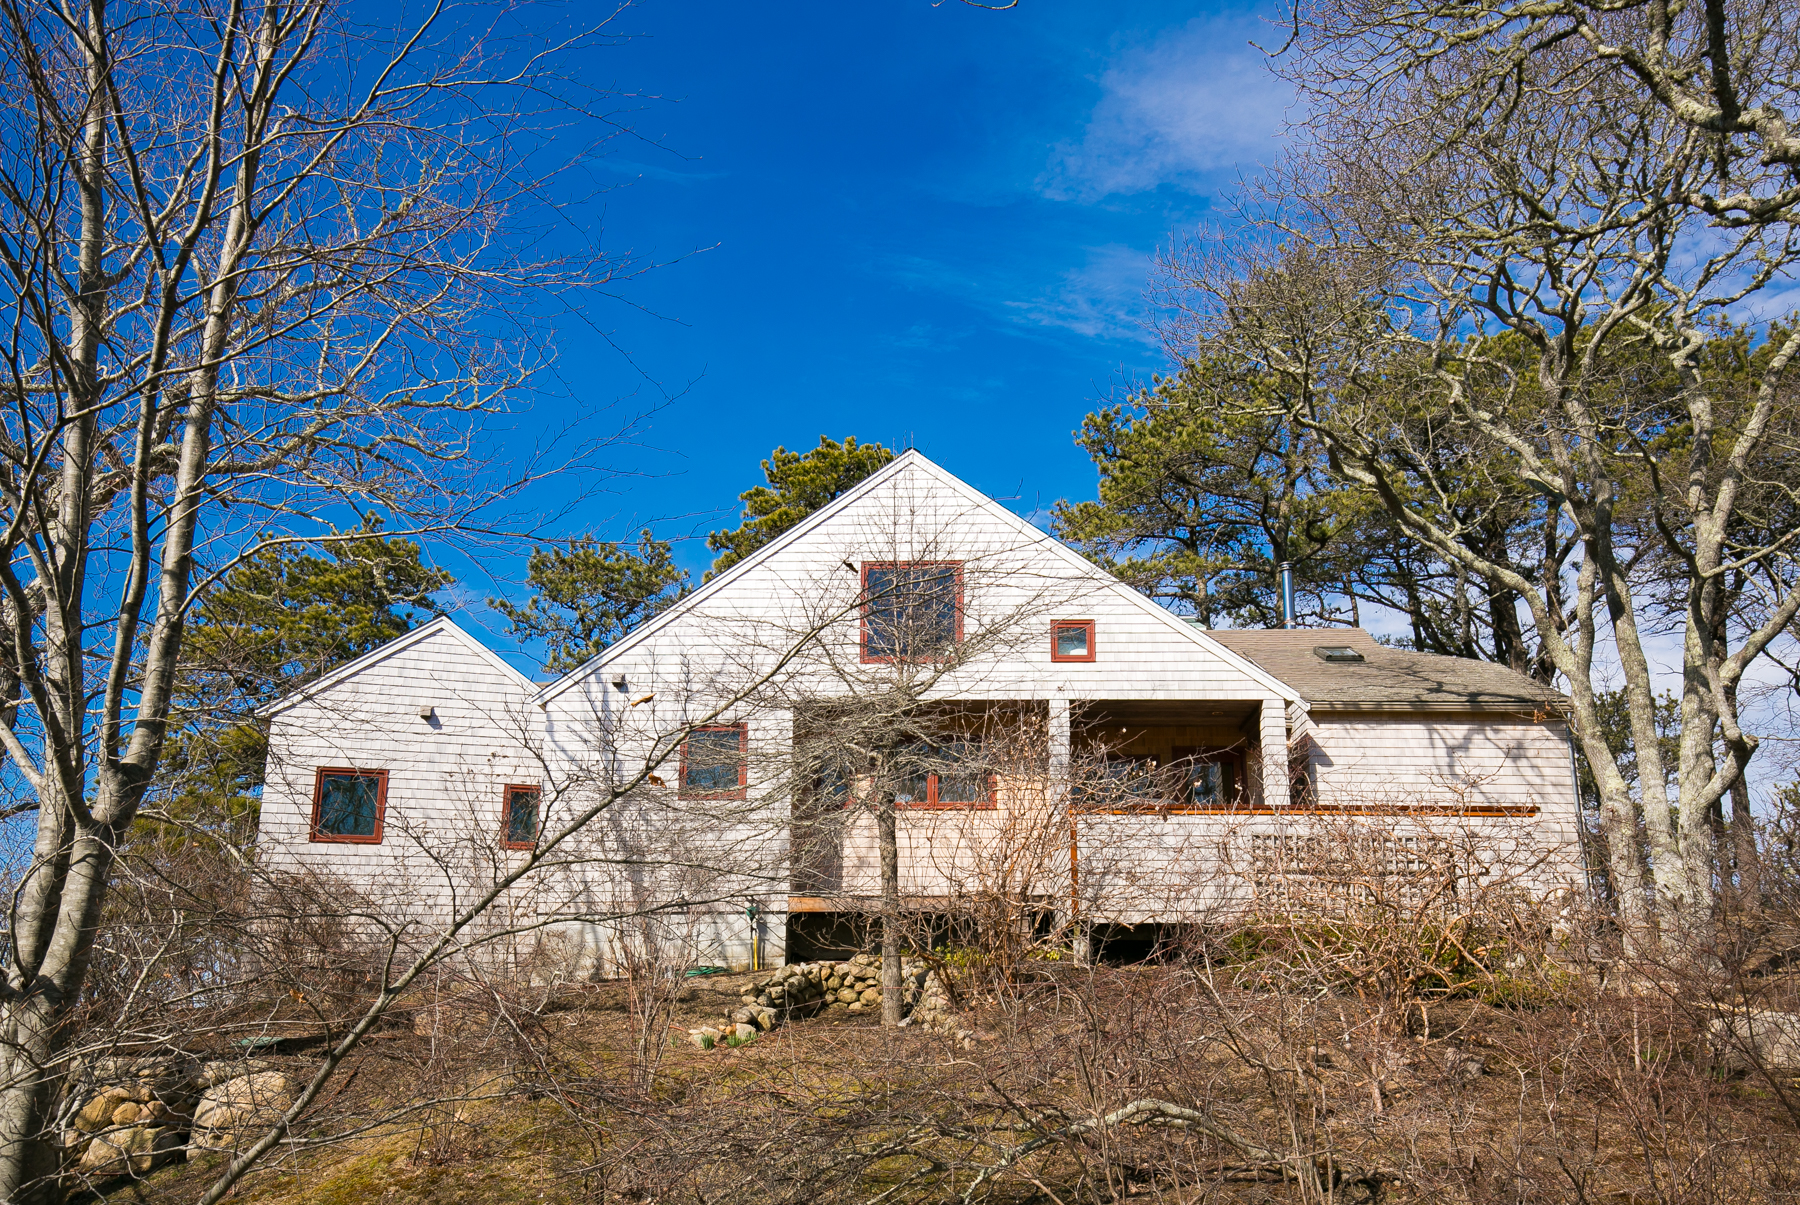 Single Family Home for Sale at Inviting Chilmark Contemporary 72 Blueberry Ridge Lane Chilmark, Massachusetts, 02535 United States